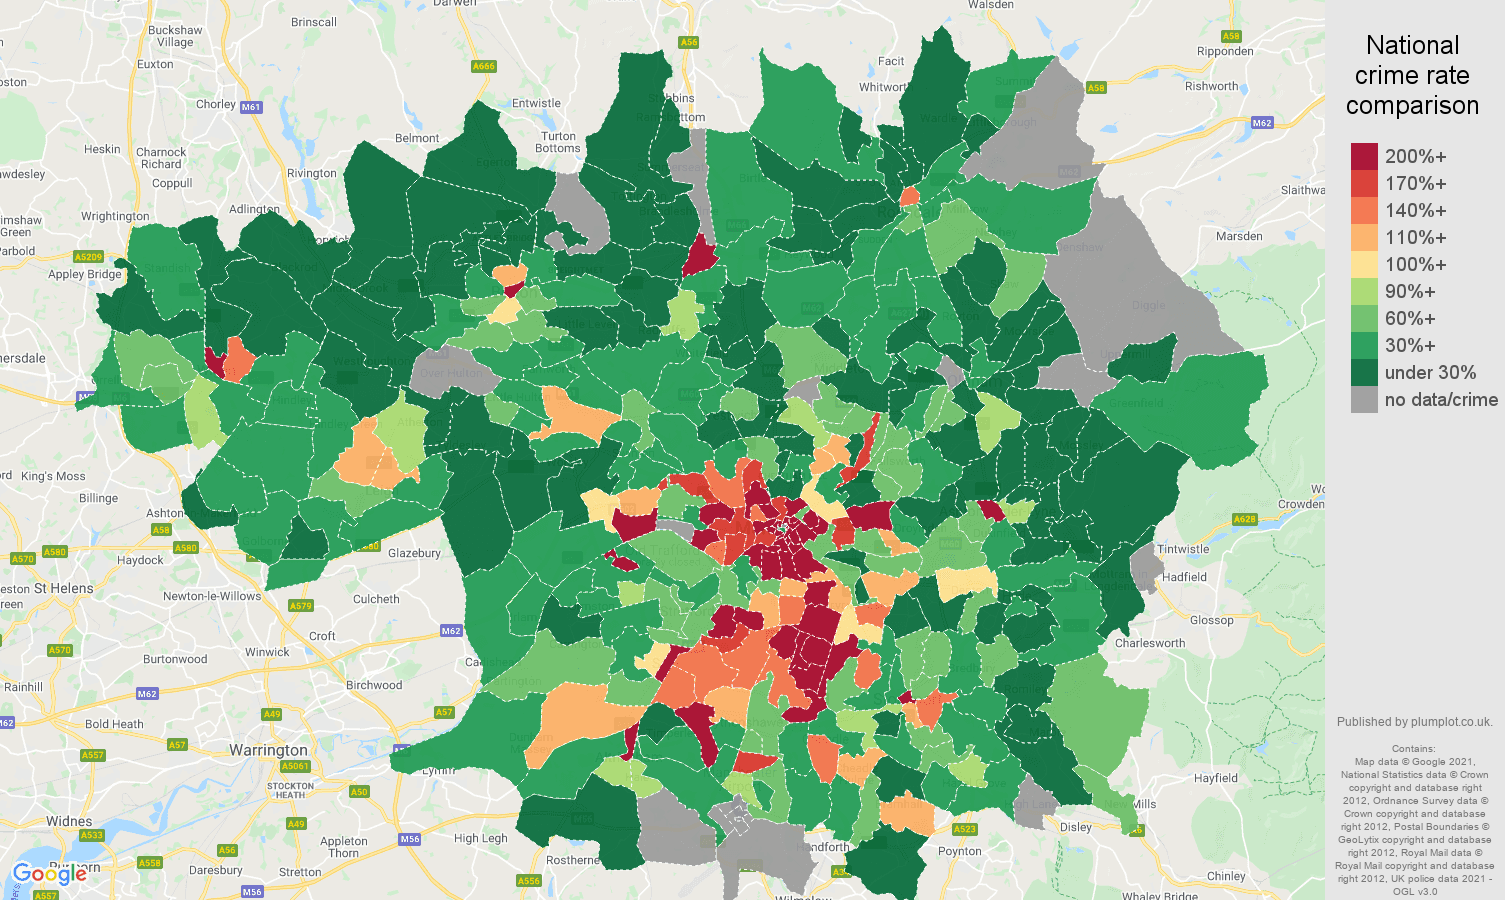 Greater Manchester bicycle theft crime rate comparison map